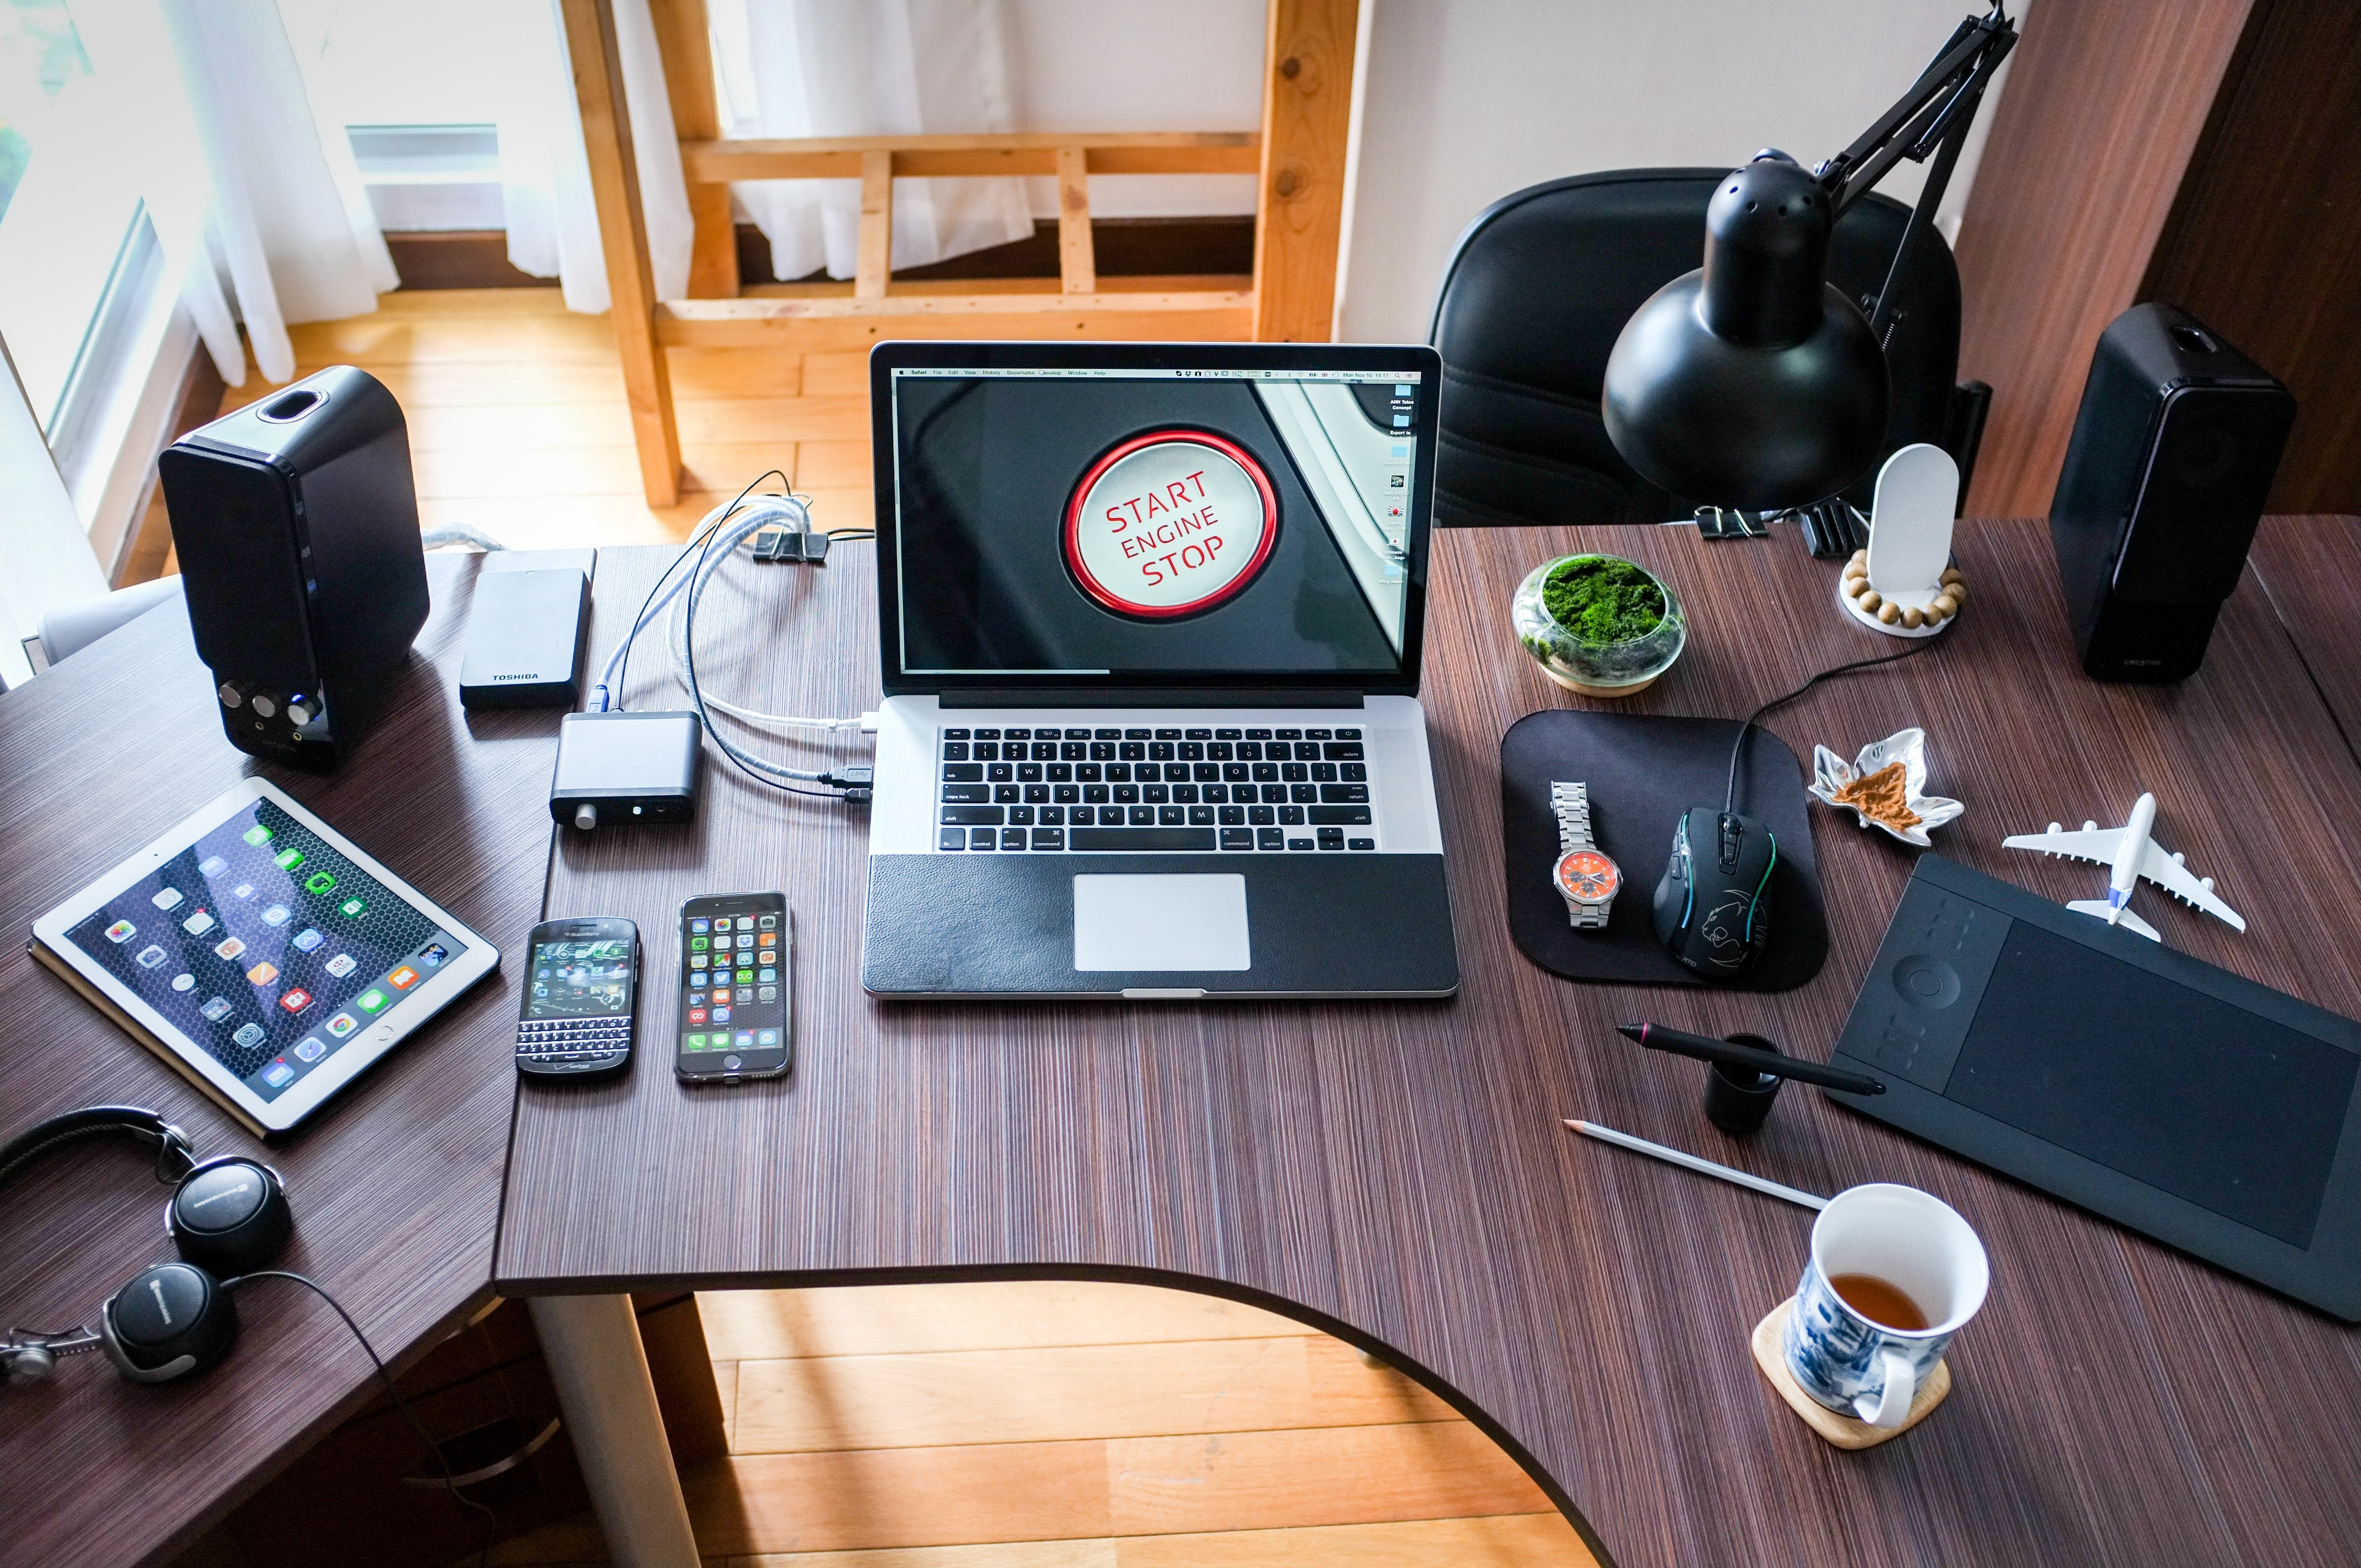 A brown, boomerang-shaped desk with a laptop, Blackberry, iPhone, tablet, gaming mouse, and cup of coffee on it in a bright room.